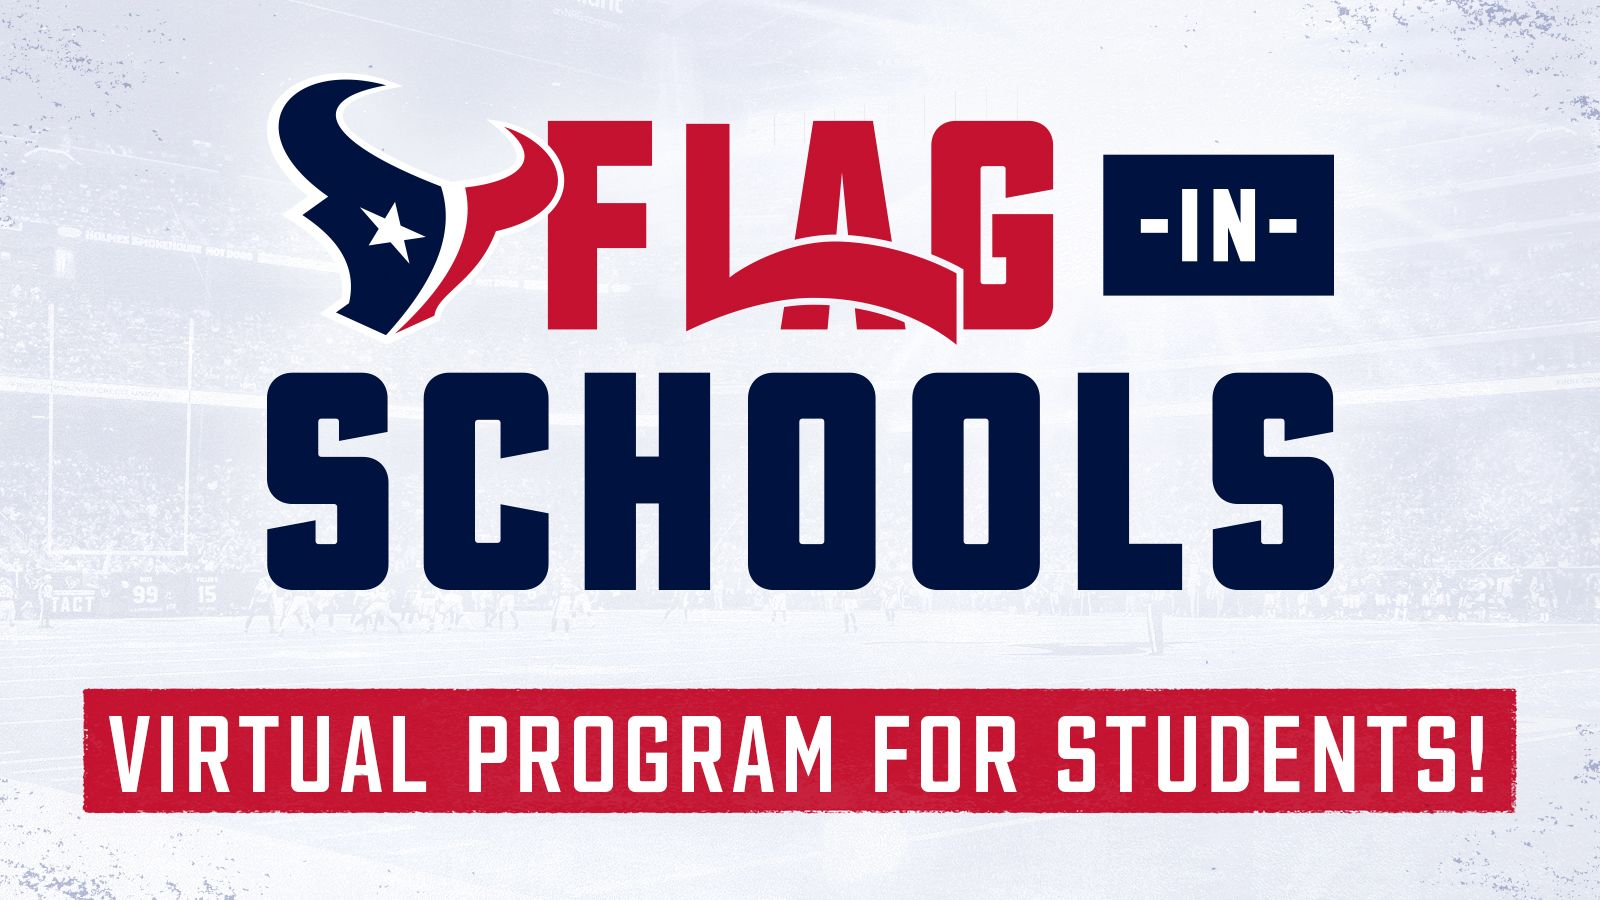 Flag in Schools. Virtual program for students!